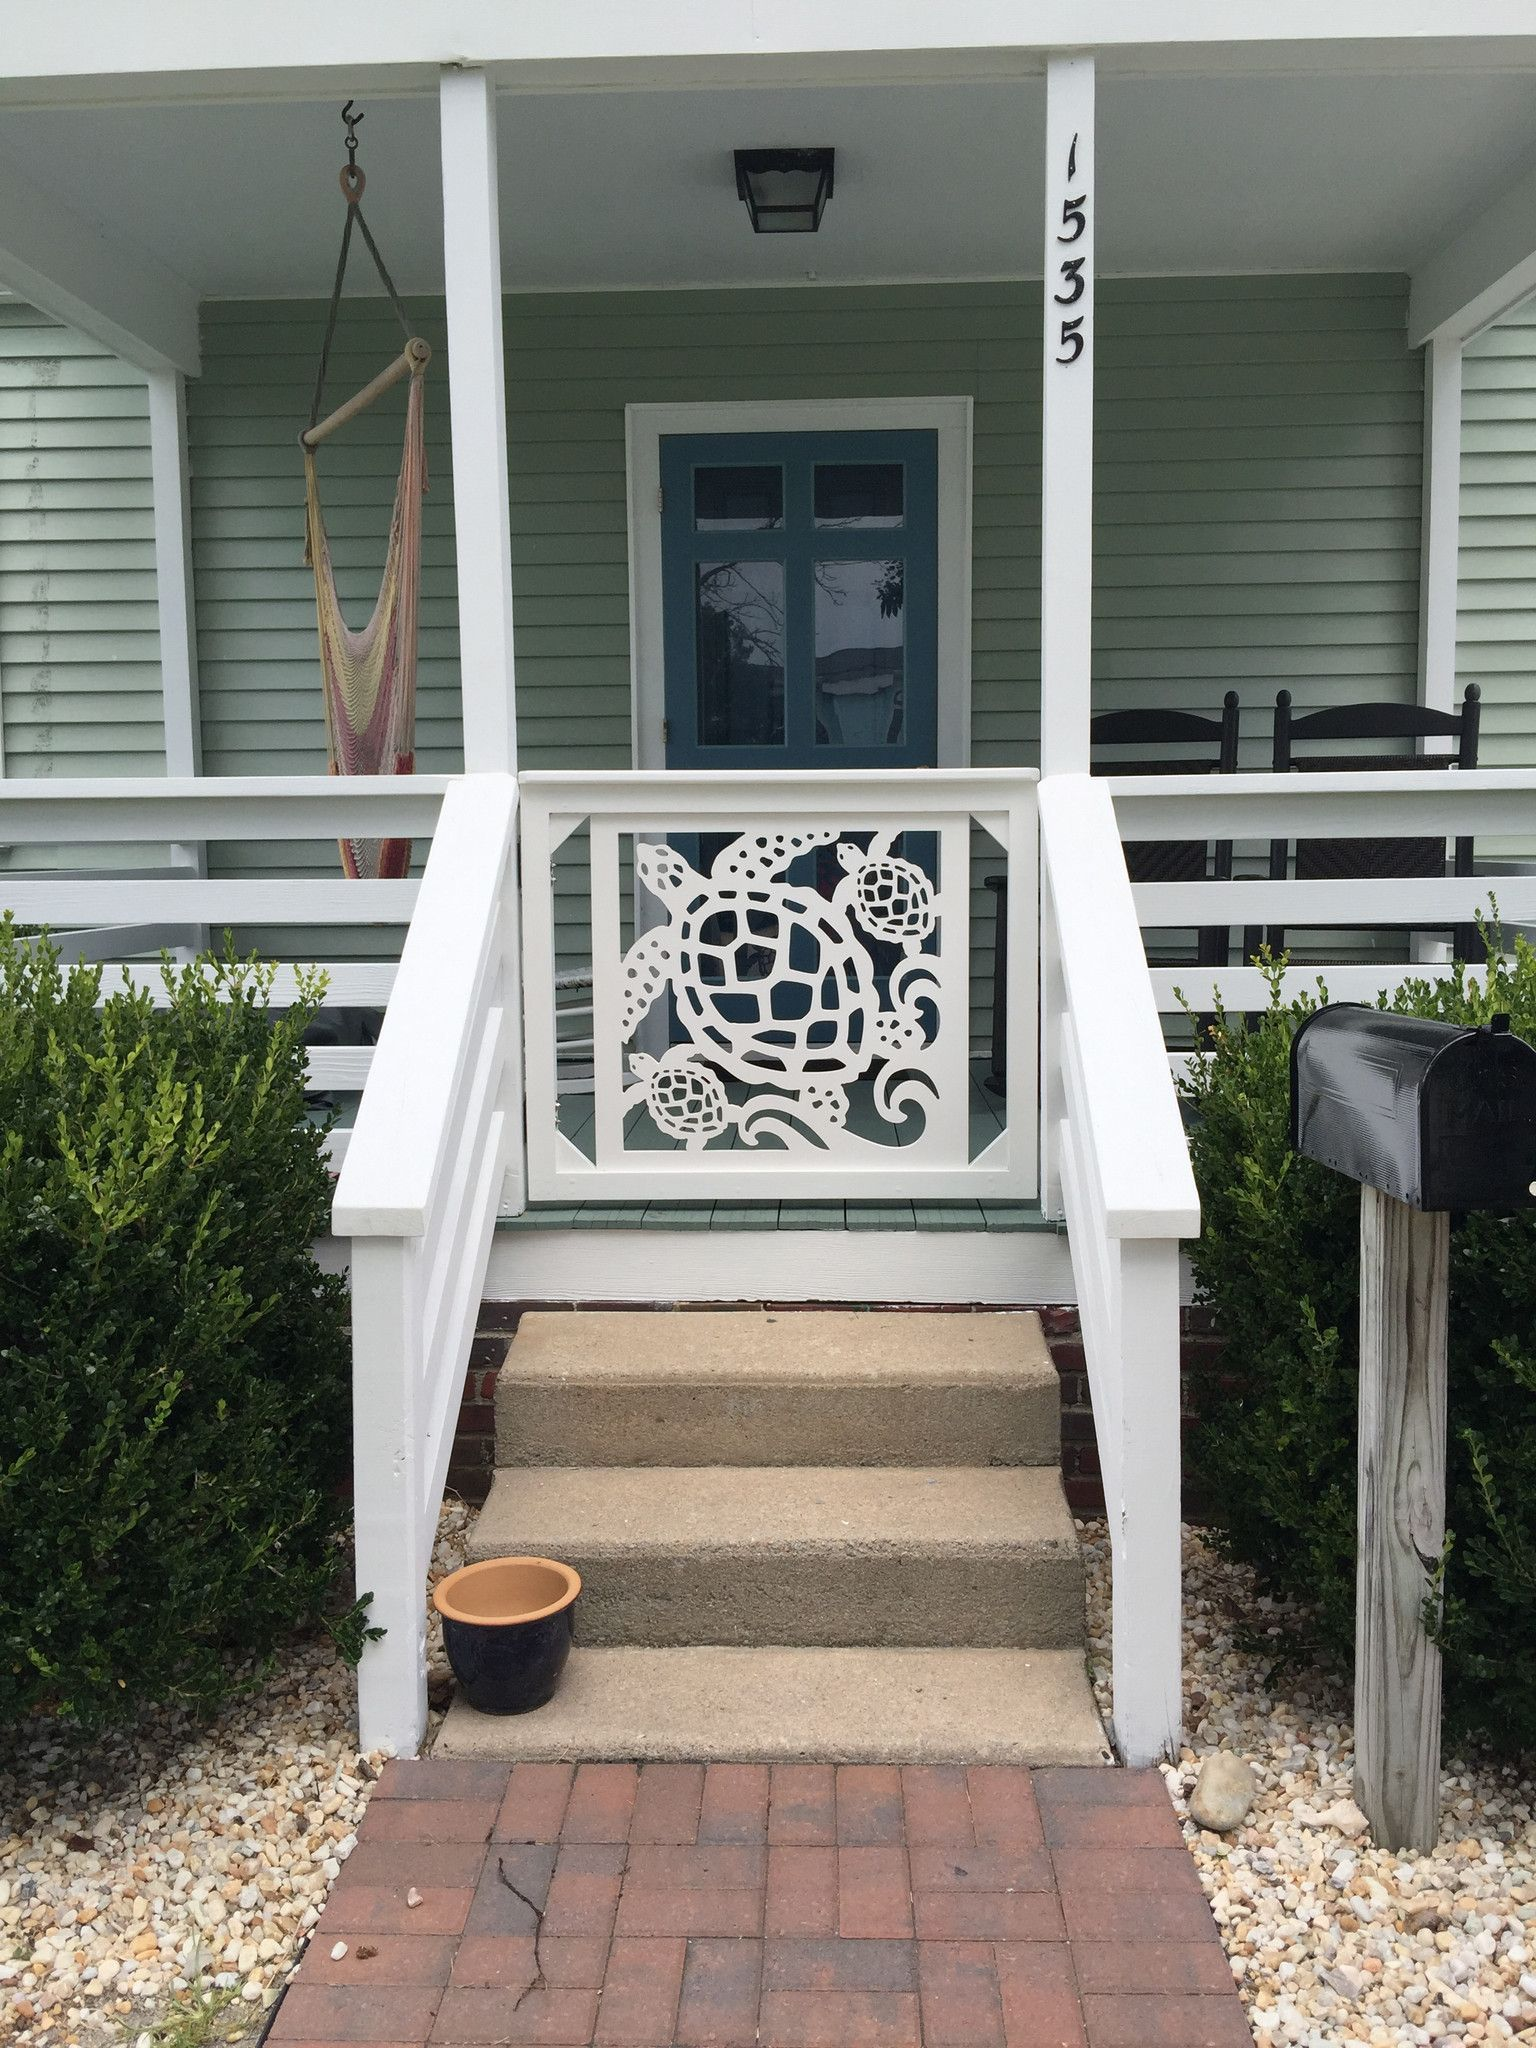 Our Beautiful All Weather Pvc Gate And Porch Railing Panels Add